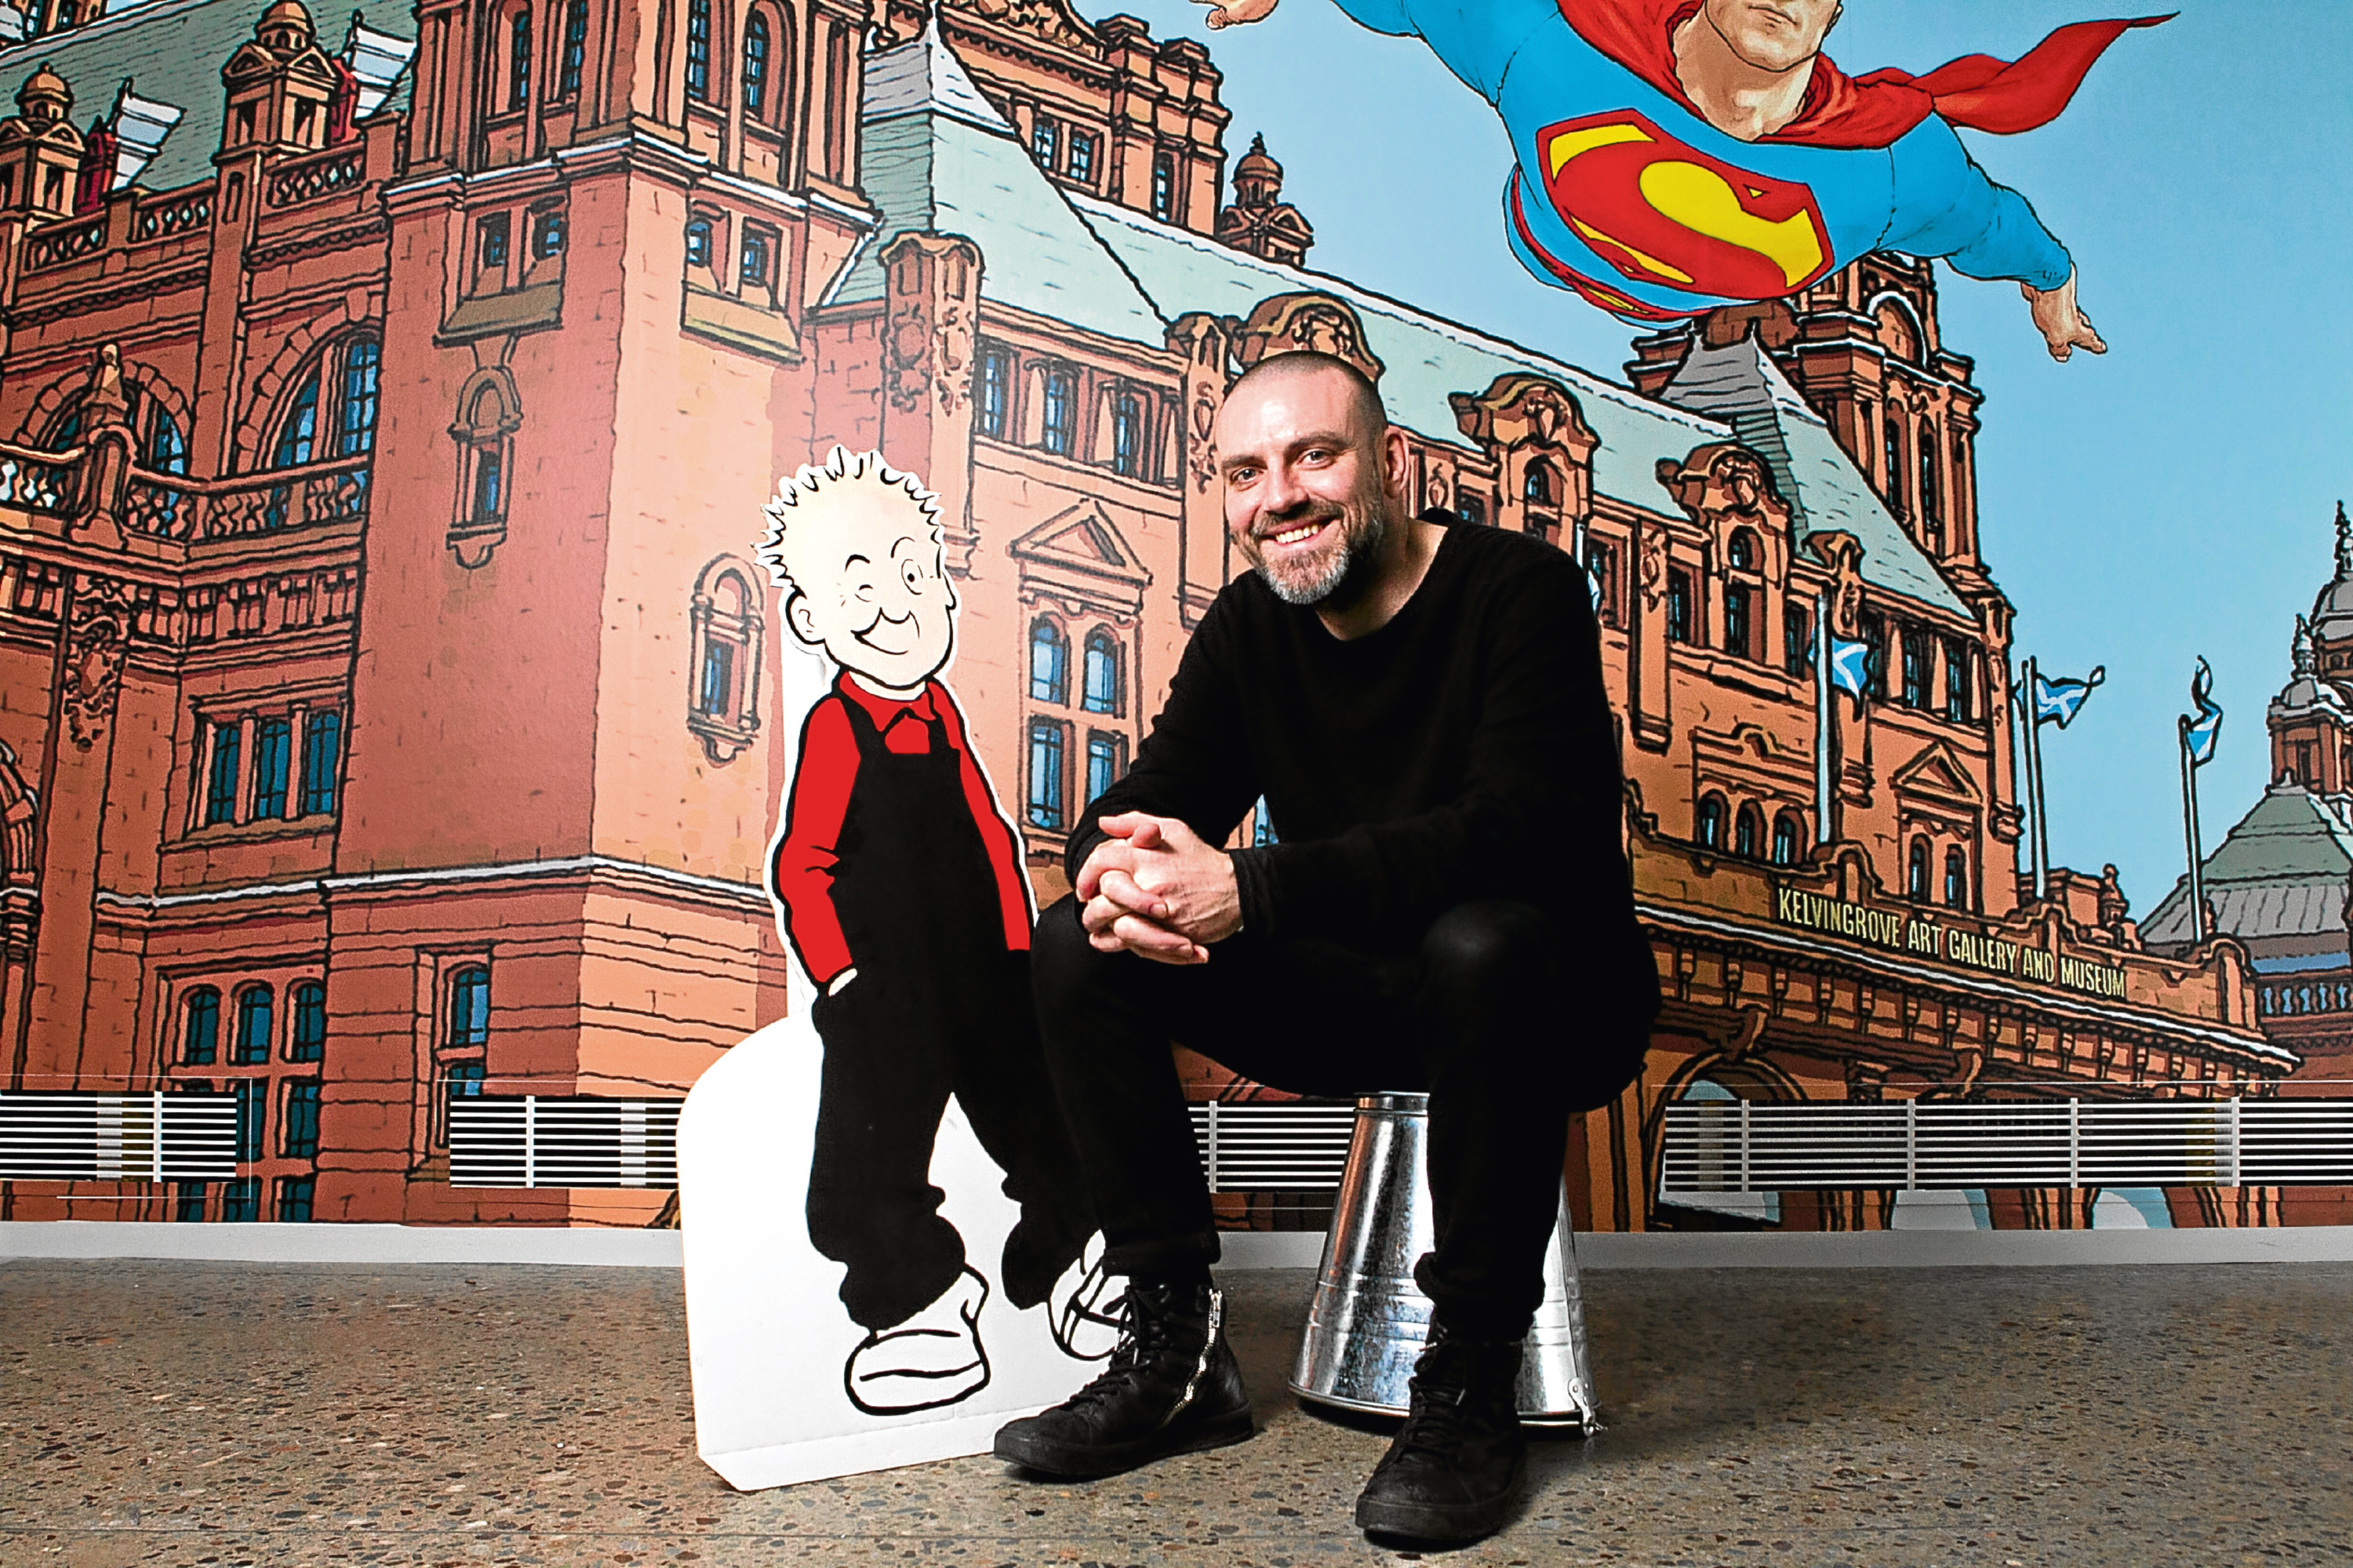 Vin Deighan, (aka Frank Quitely) was inspired by Oor Wullie and the Broons (Andrew Cawley / DC Thomson)